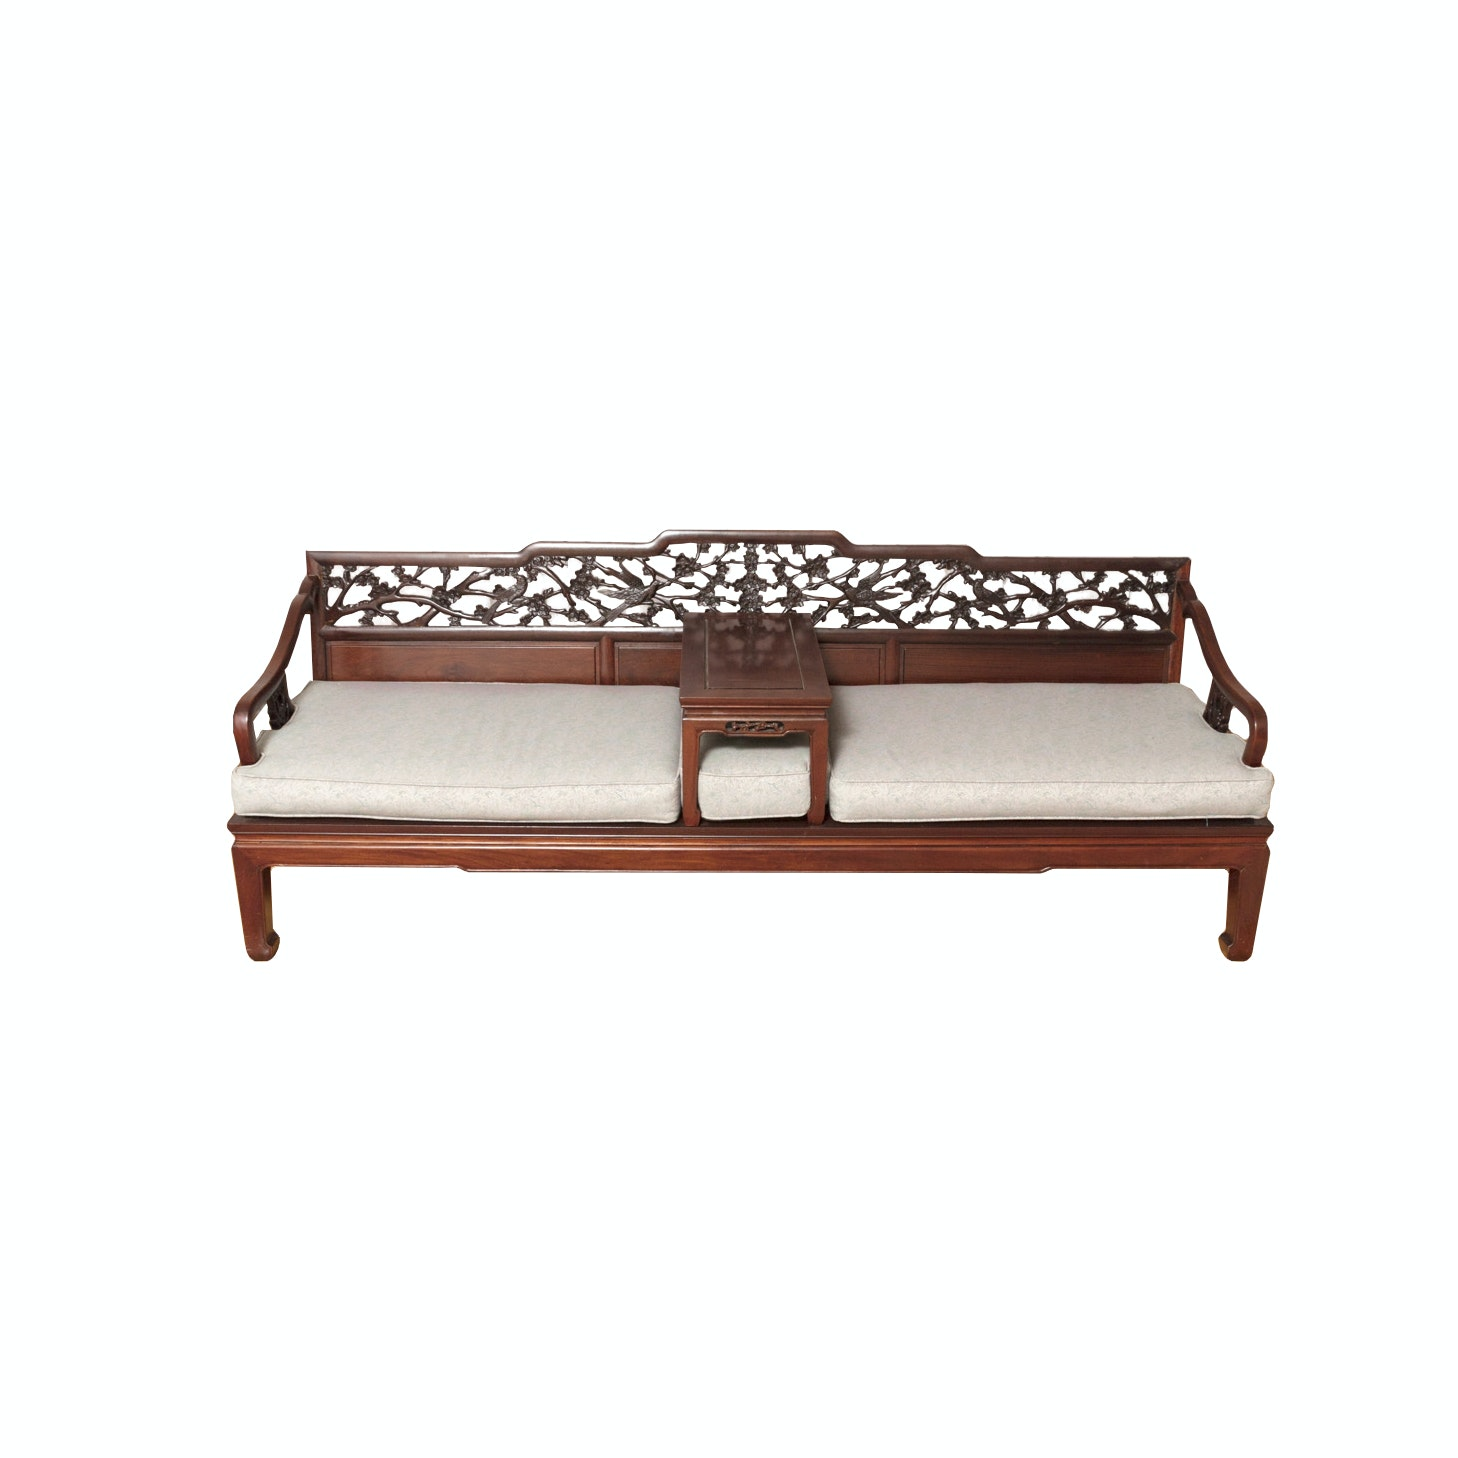 Chinese Inspired Carved Bench with In-set Table